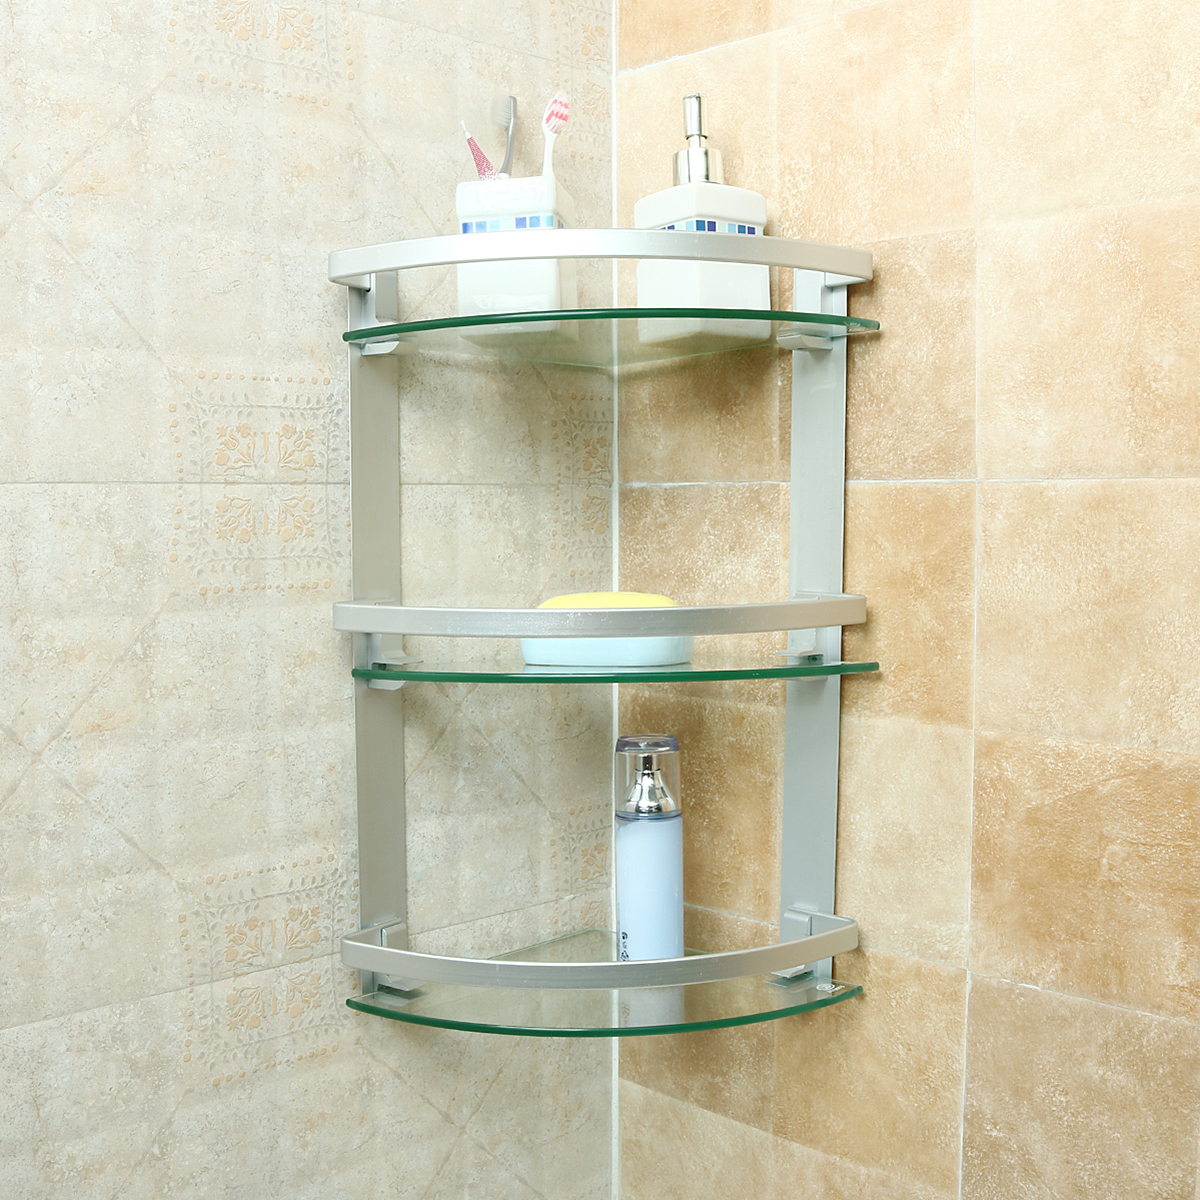 3 tier glass bathroom shower caddy corner shelf organizer - Bathroom glass corner shelves shower ...